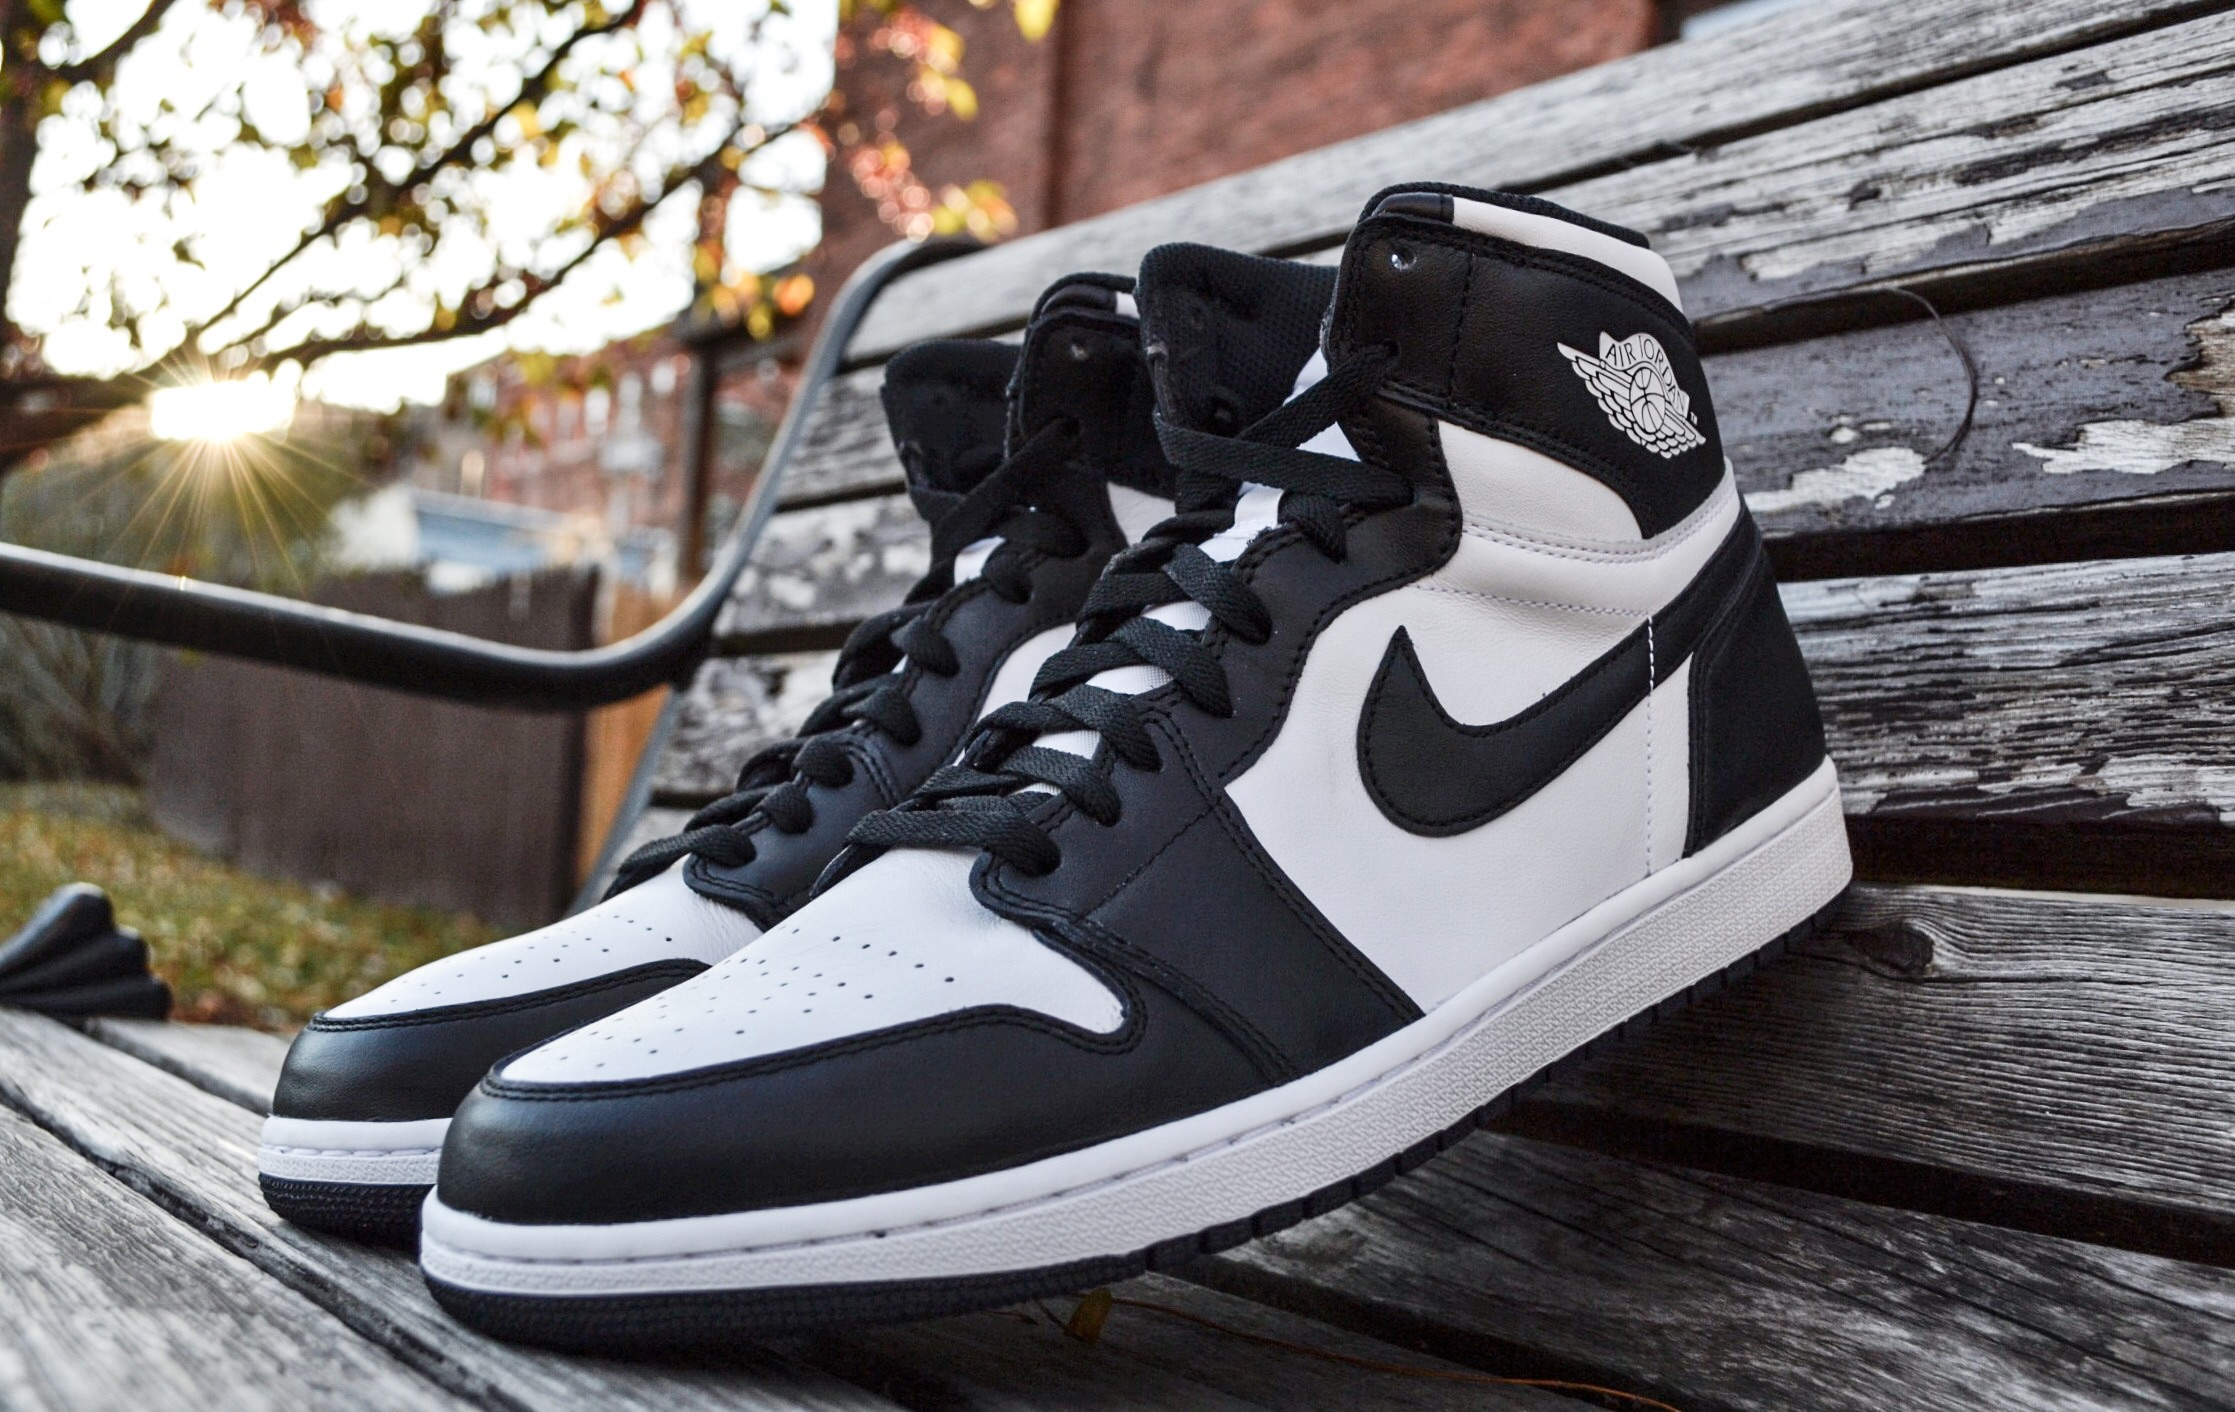 The Air Jordan 1 OG High Black/White release back in November true to original form with Nike Air Branding on the tongue.